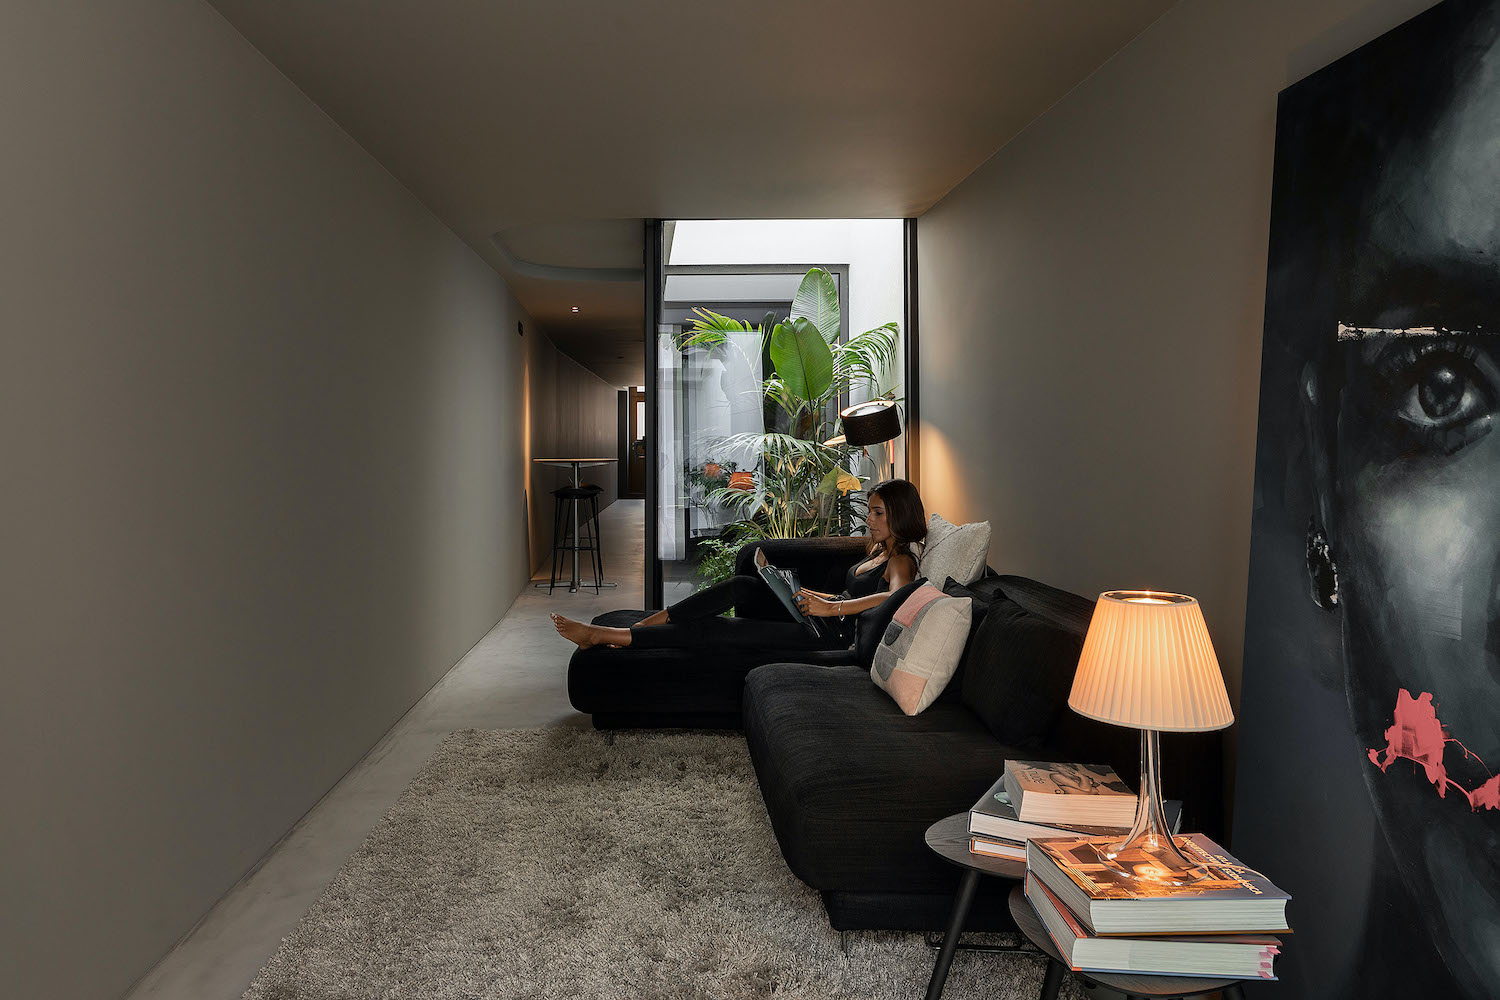 girl reading book while sitting on black sofa in living room